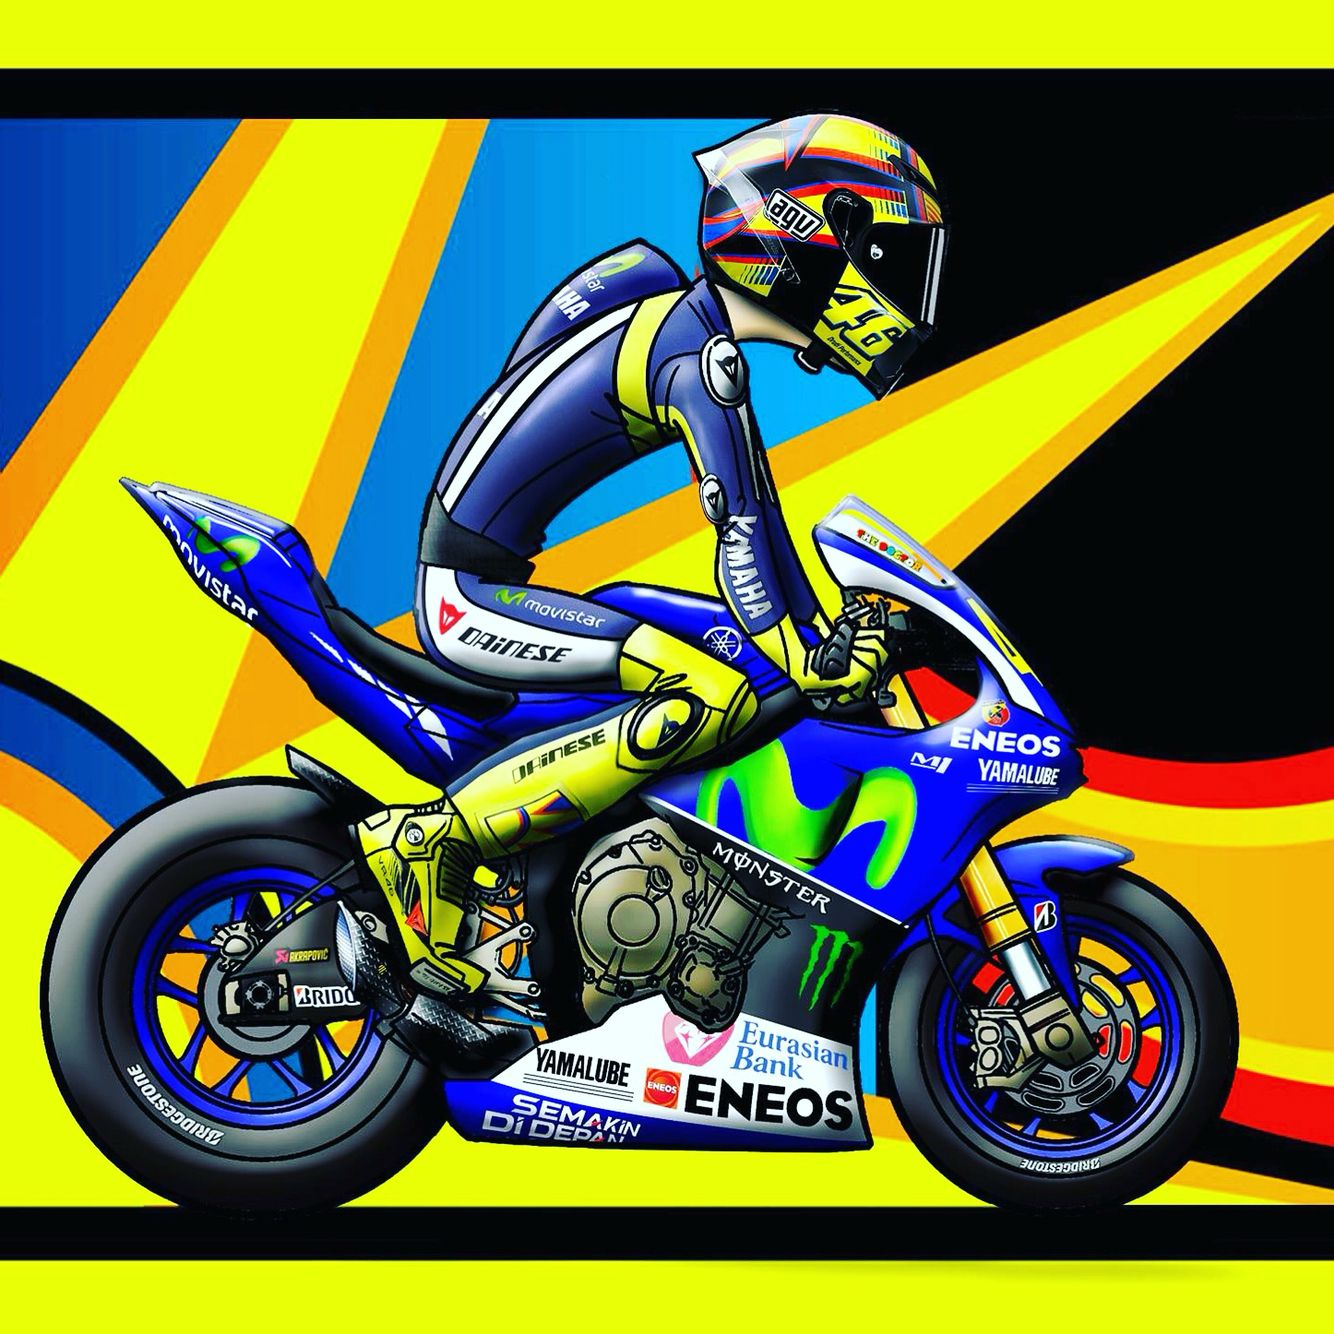 cartoon valentino rossi news 6am. Black Bedroom Furniture Sets. Home Design Ideas